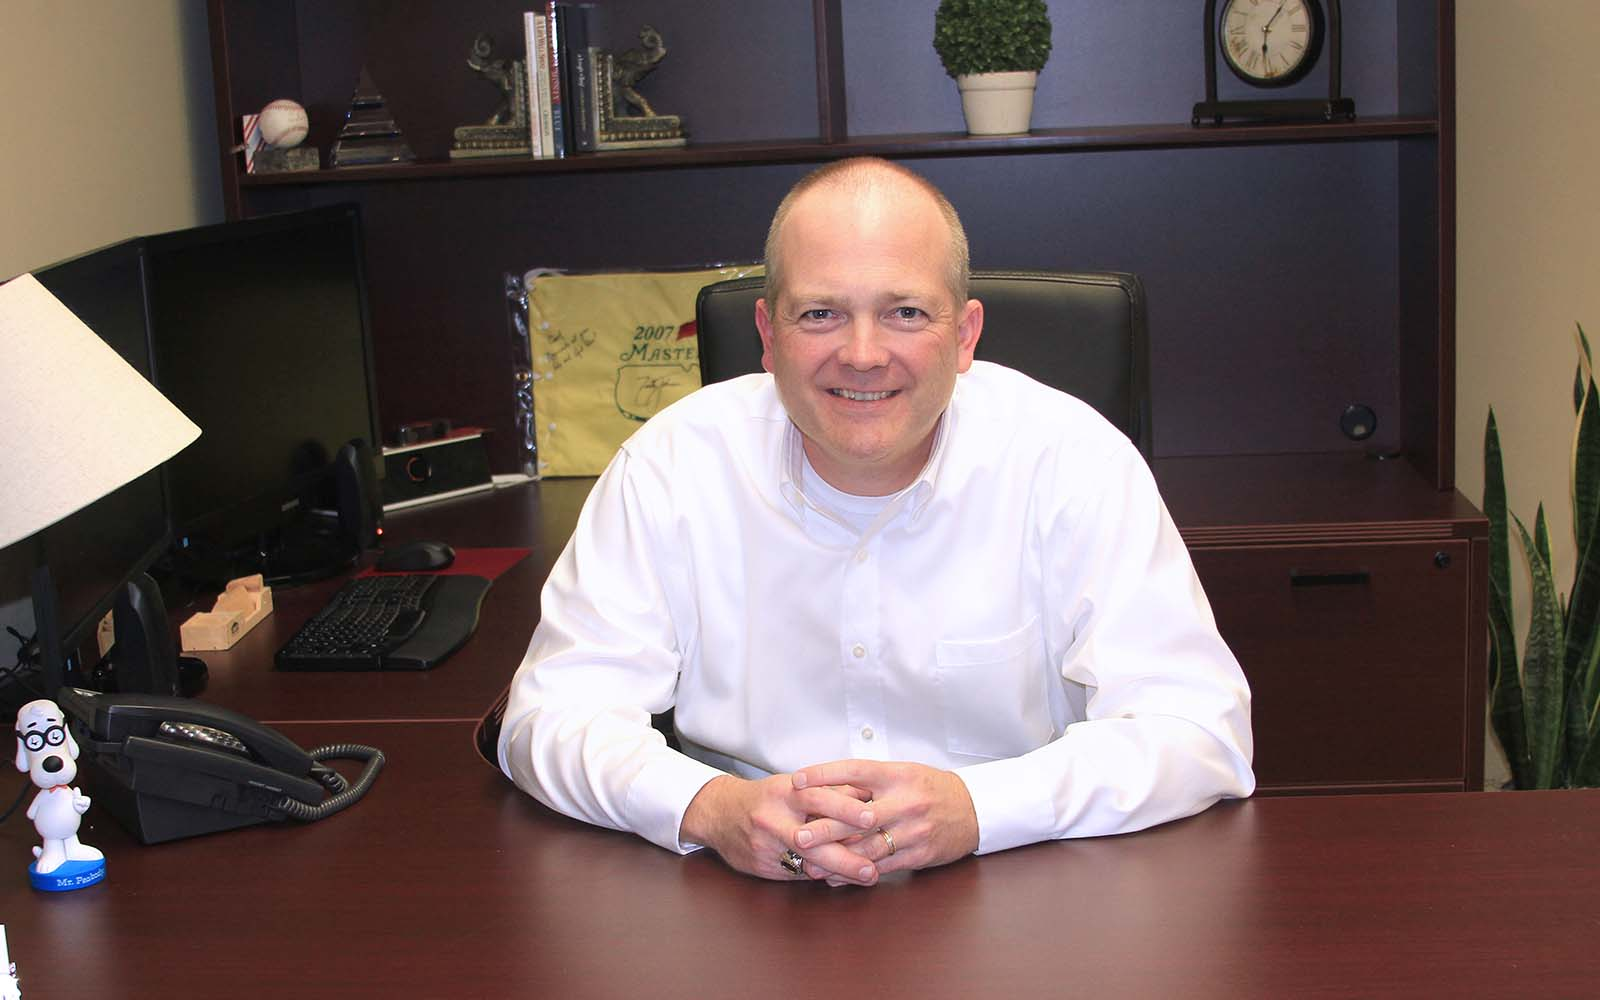 The best about Carl Peabody CPA, is that he provides tax, accounting, and business consultation services for individuals, partnerships, and corporations.